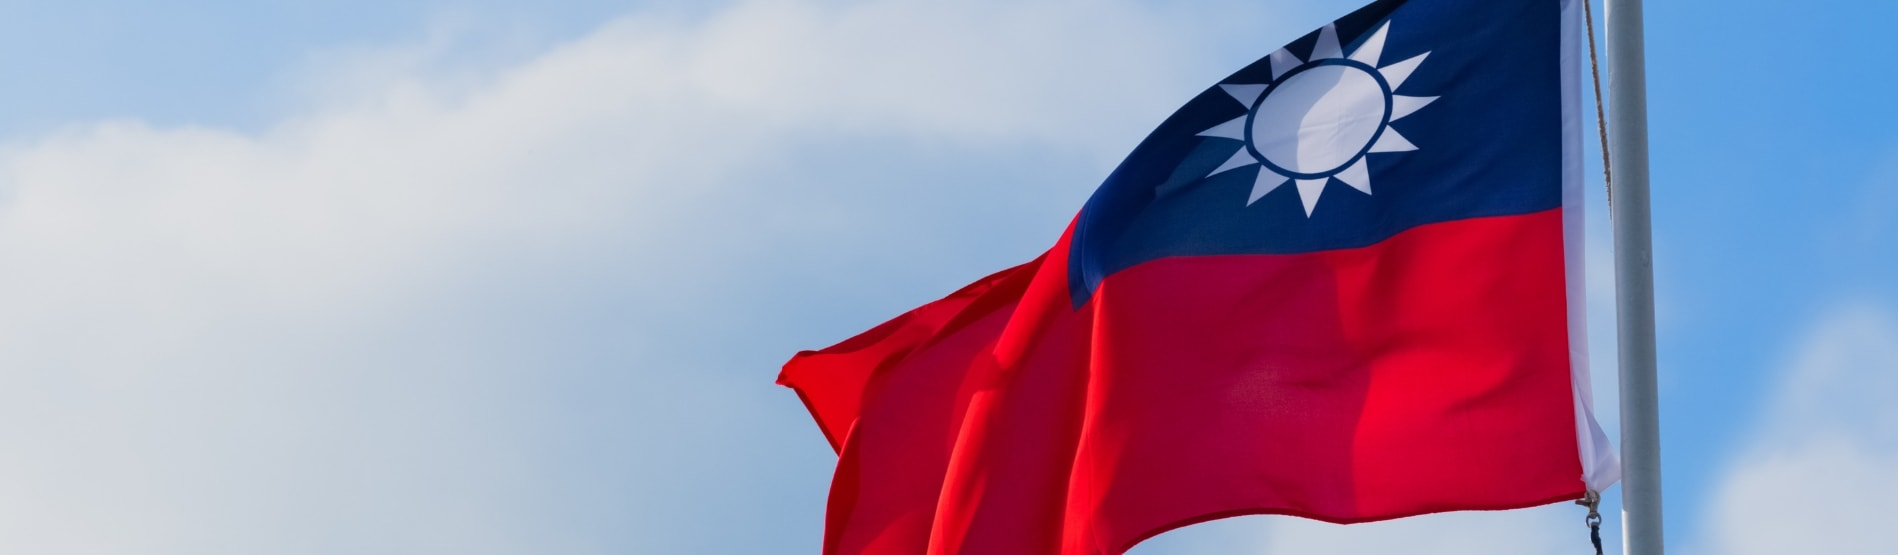 Taiwanese flag blowing in the breeze.